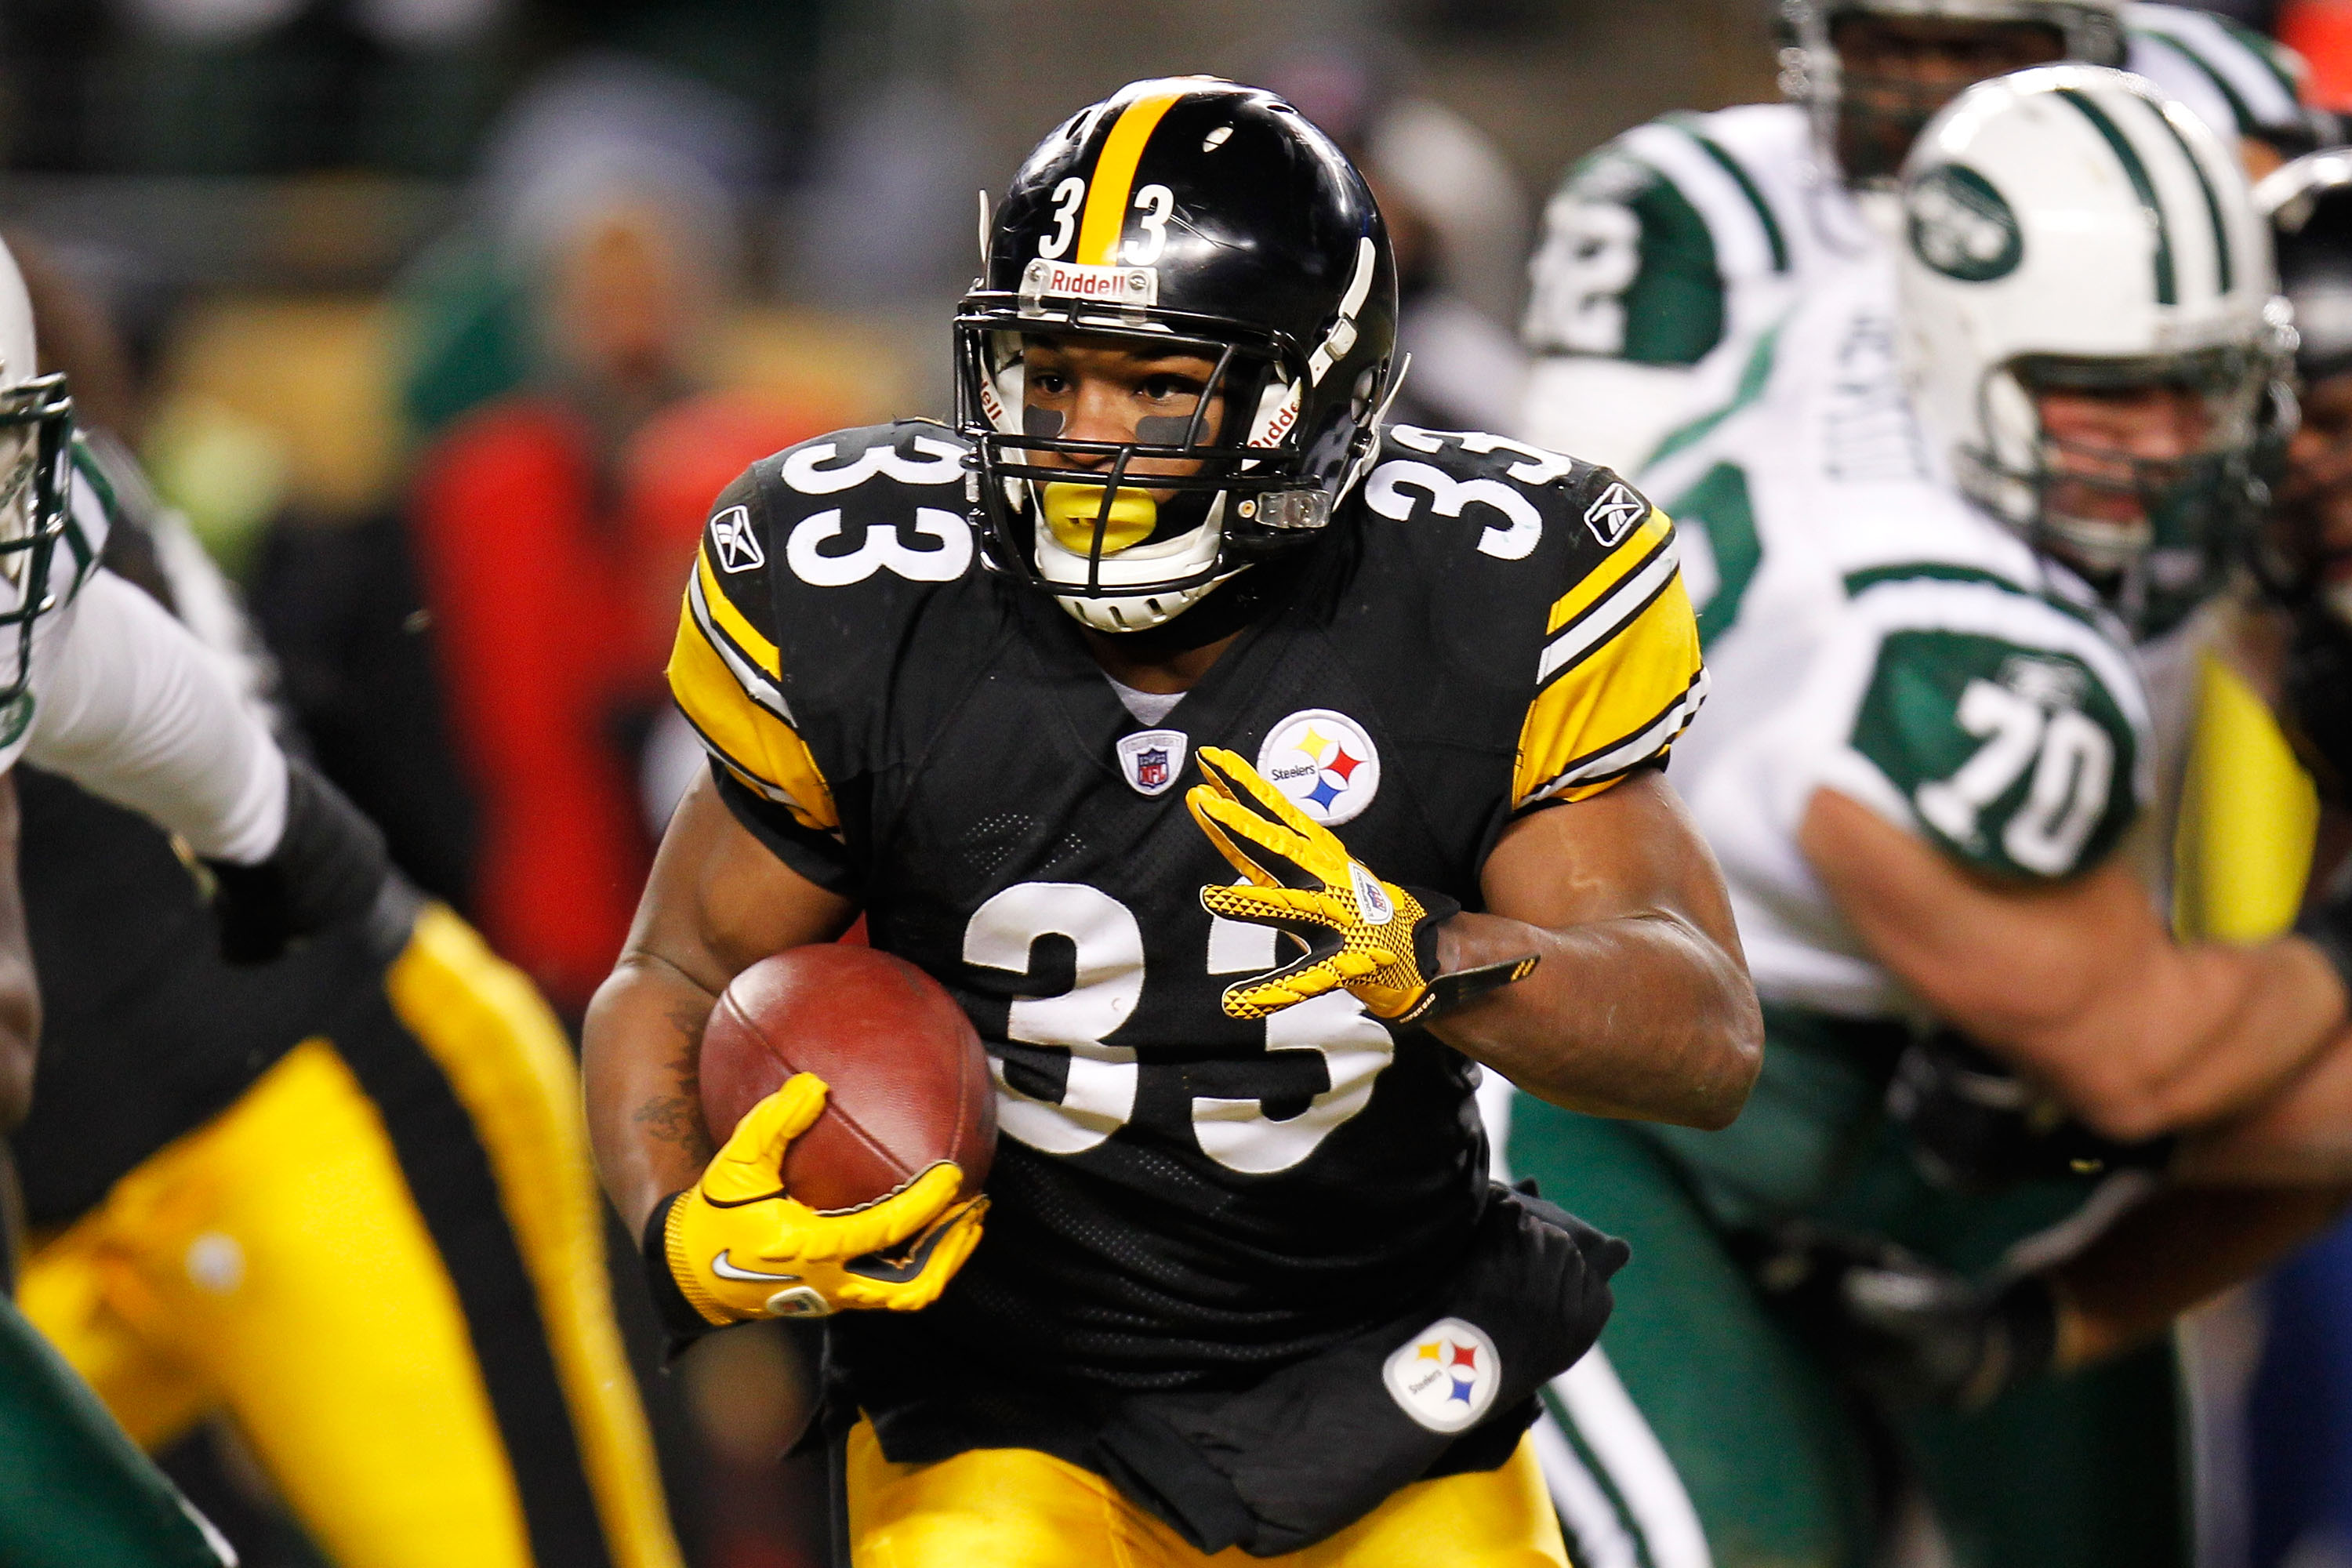 PITTSBURGH, PA - JANUARY 23:  Isaac Redman #33 of the Pittsburgh Steelers runs down field against the New York Jets during the 2011 AFC Championship game at Heinz Field on January 23, 2011 in Pittsburgh, Pennsylvania.  (Photo by Gregory Shamus/Getty Image